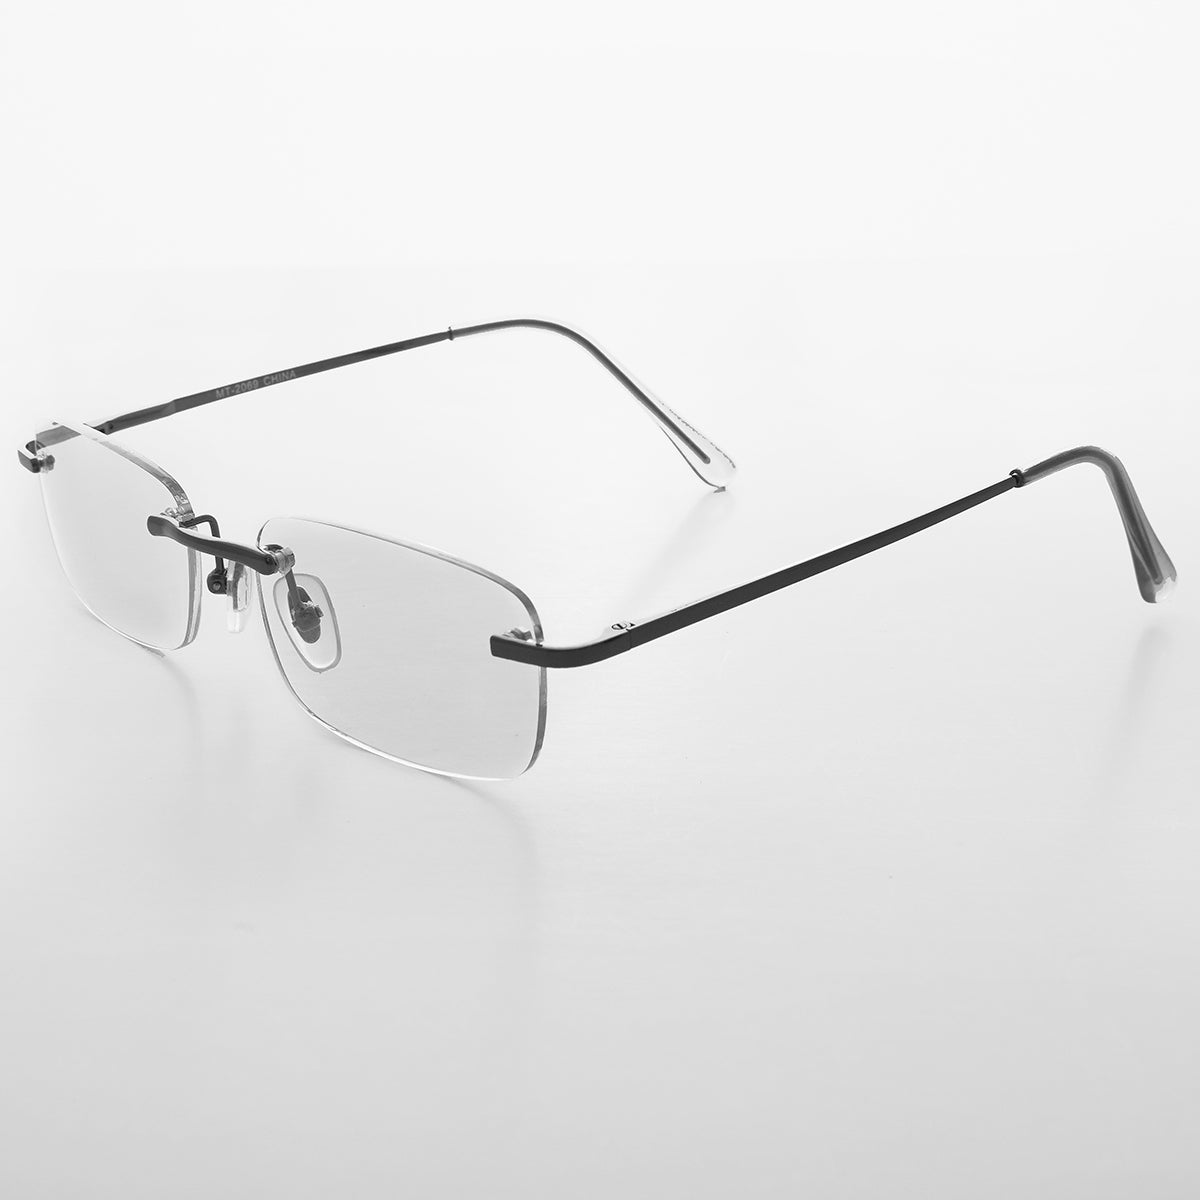 Lightweight Readers with Tinted Lenses